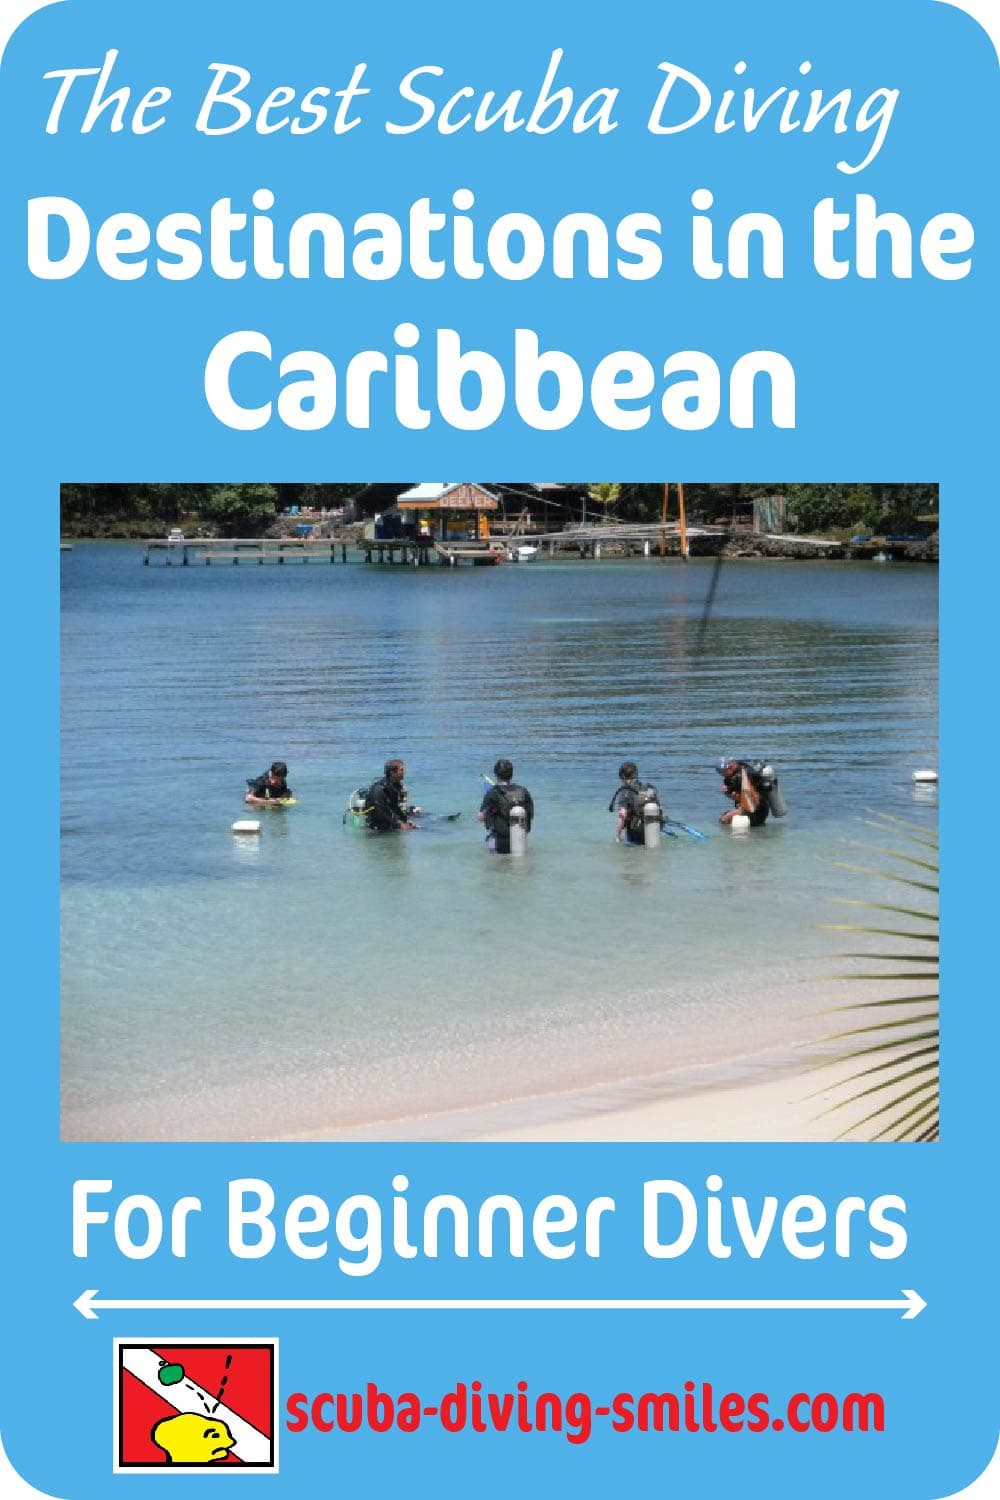 best scuba diving destinations in the caribbean graphic